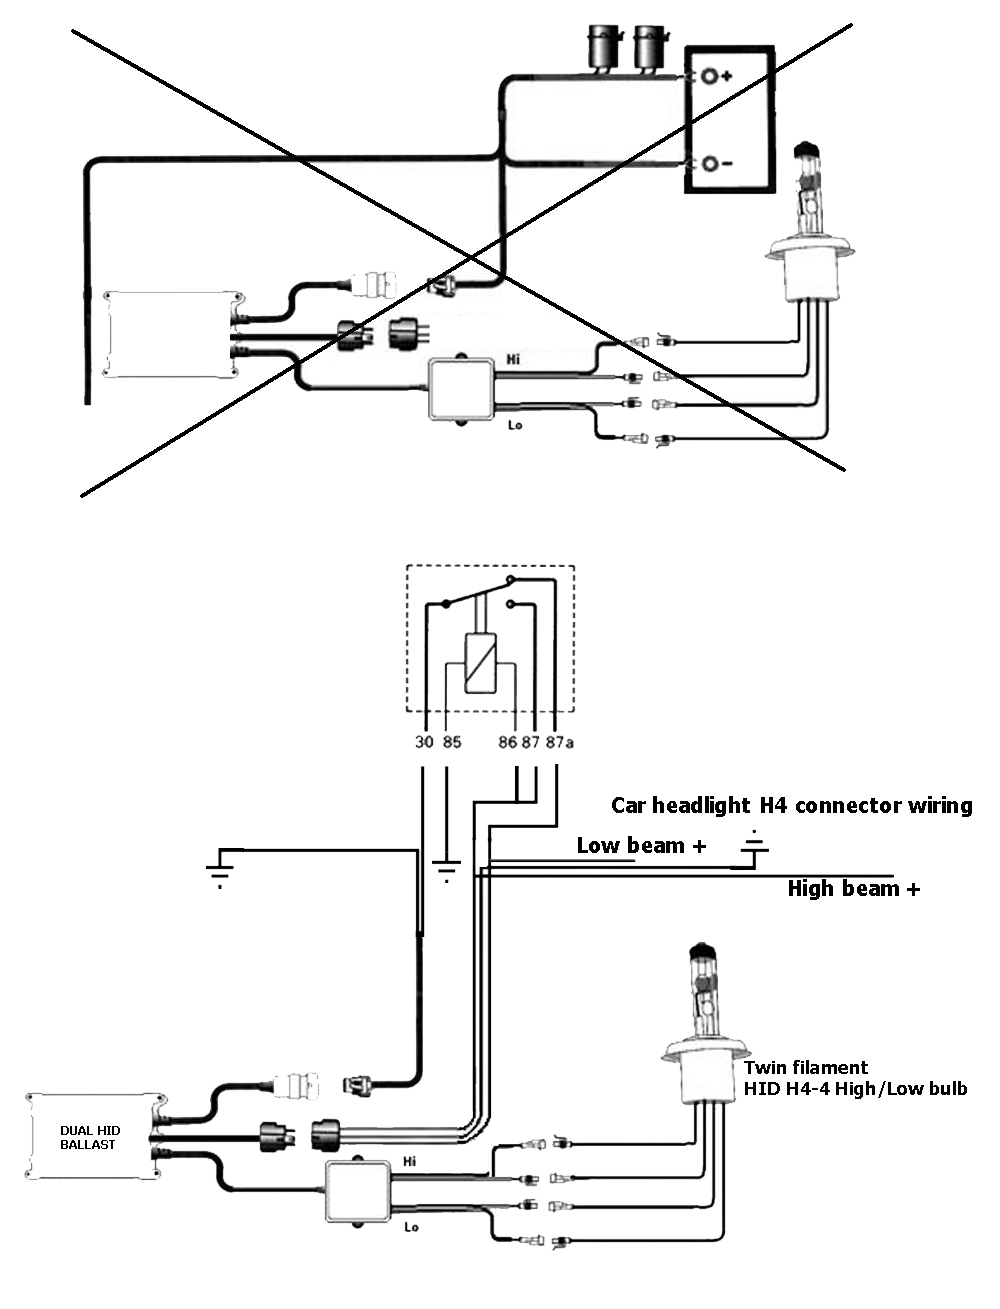 Range Rover P38 Fuse Box Under Seat : 35 Wiring Diagram